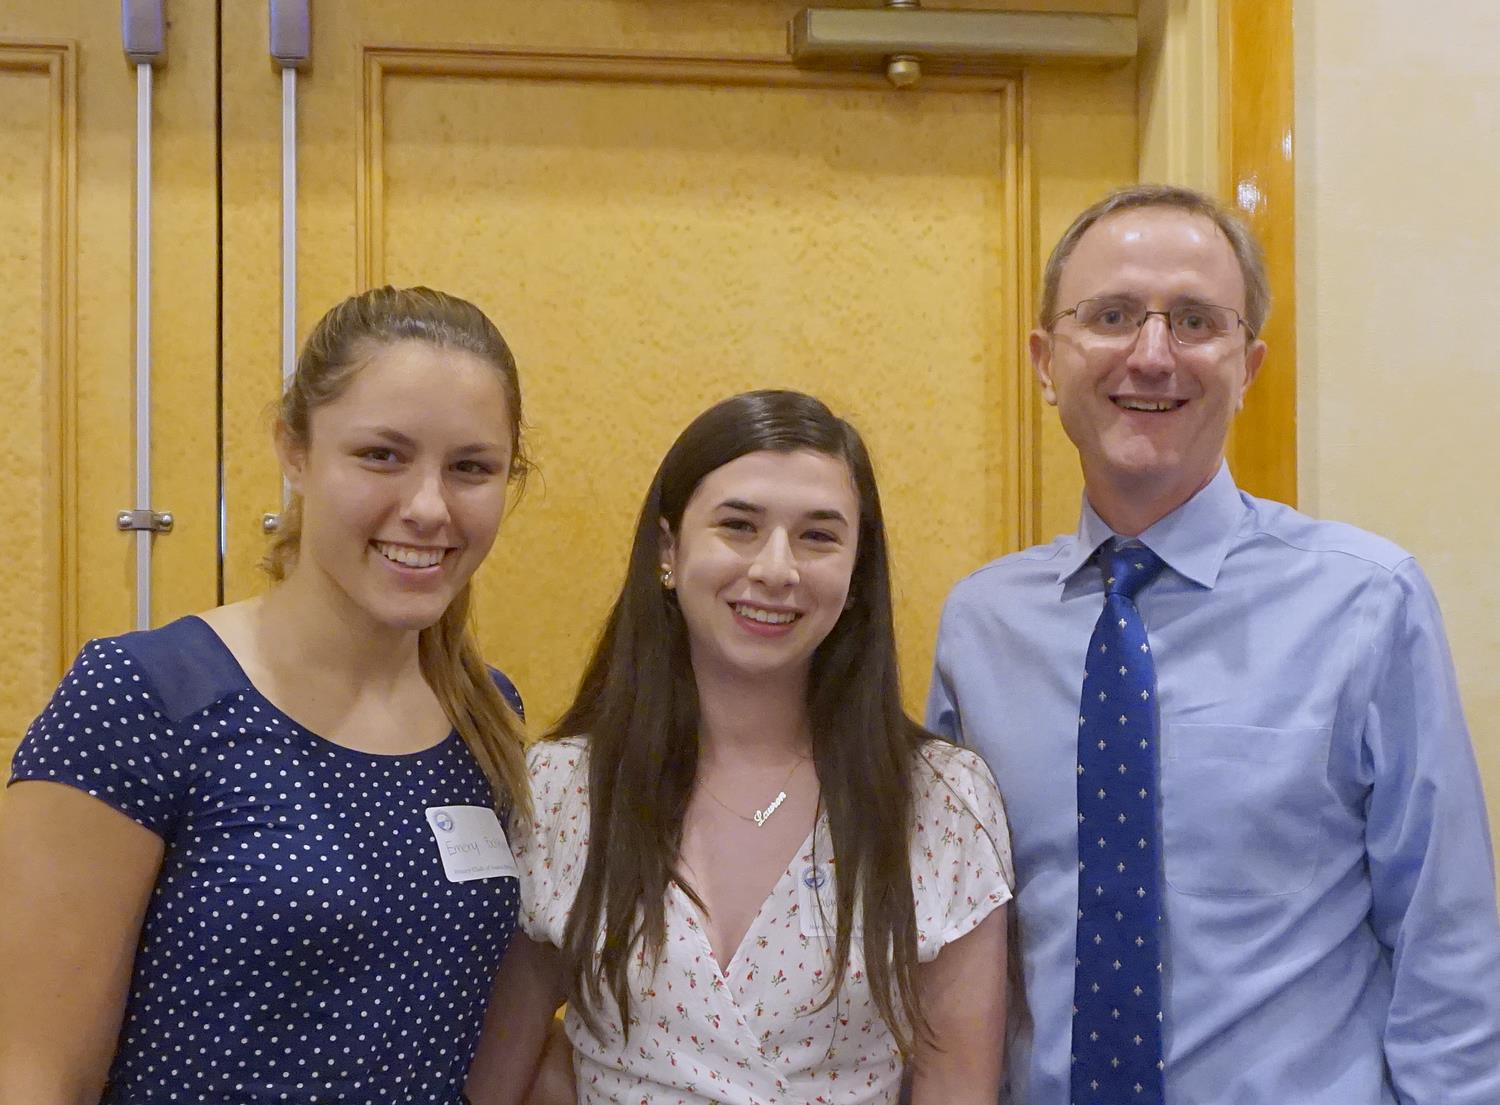 Frederick gent school olympic legacy structure inspiration from - The New Leaders Of The Interact Club At Brentwood School Were The Guests Of Bill Buxton Lauren Reichwald And Emery Bolkin We Are So Proud Of Our Young